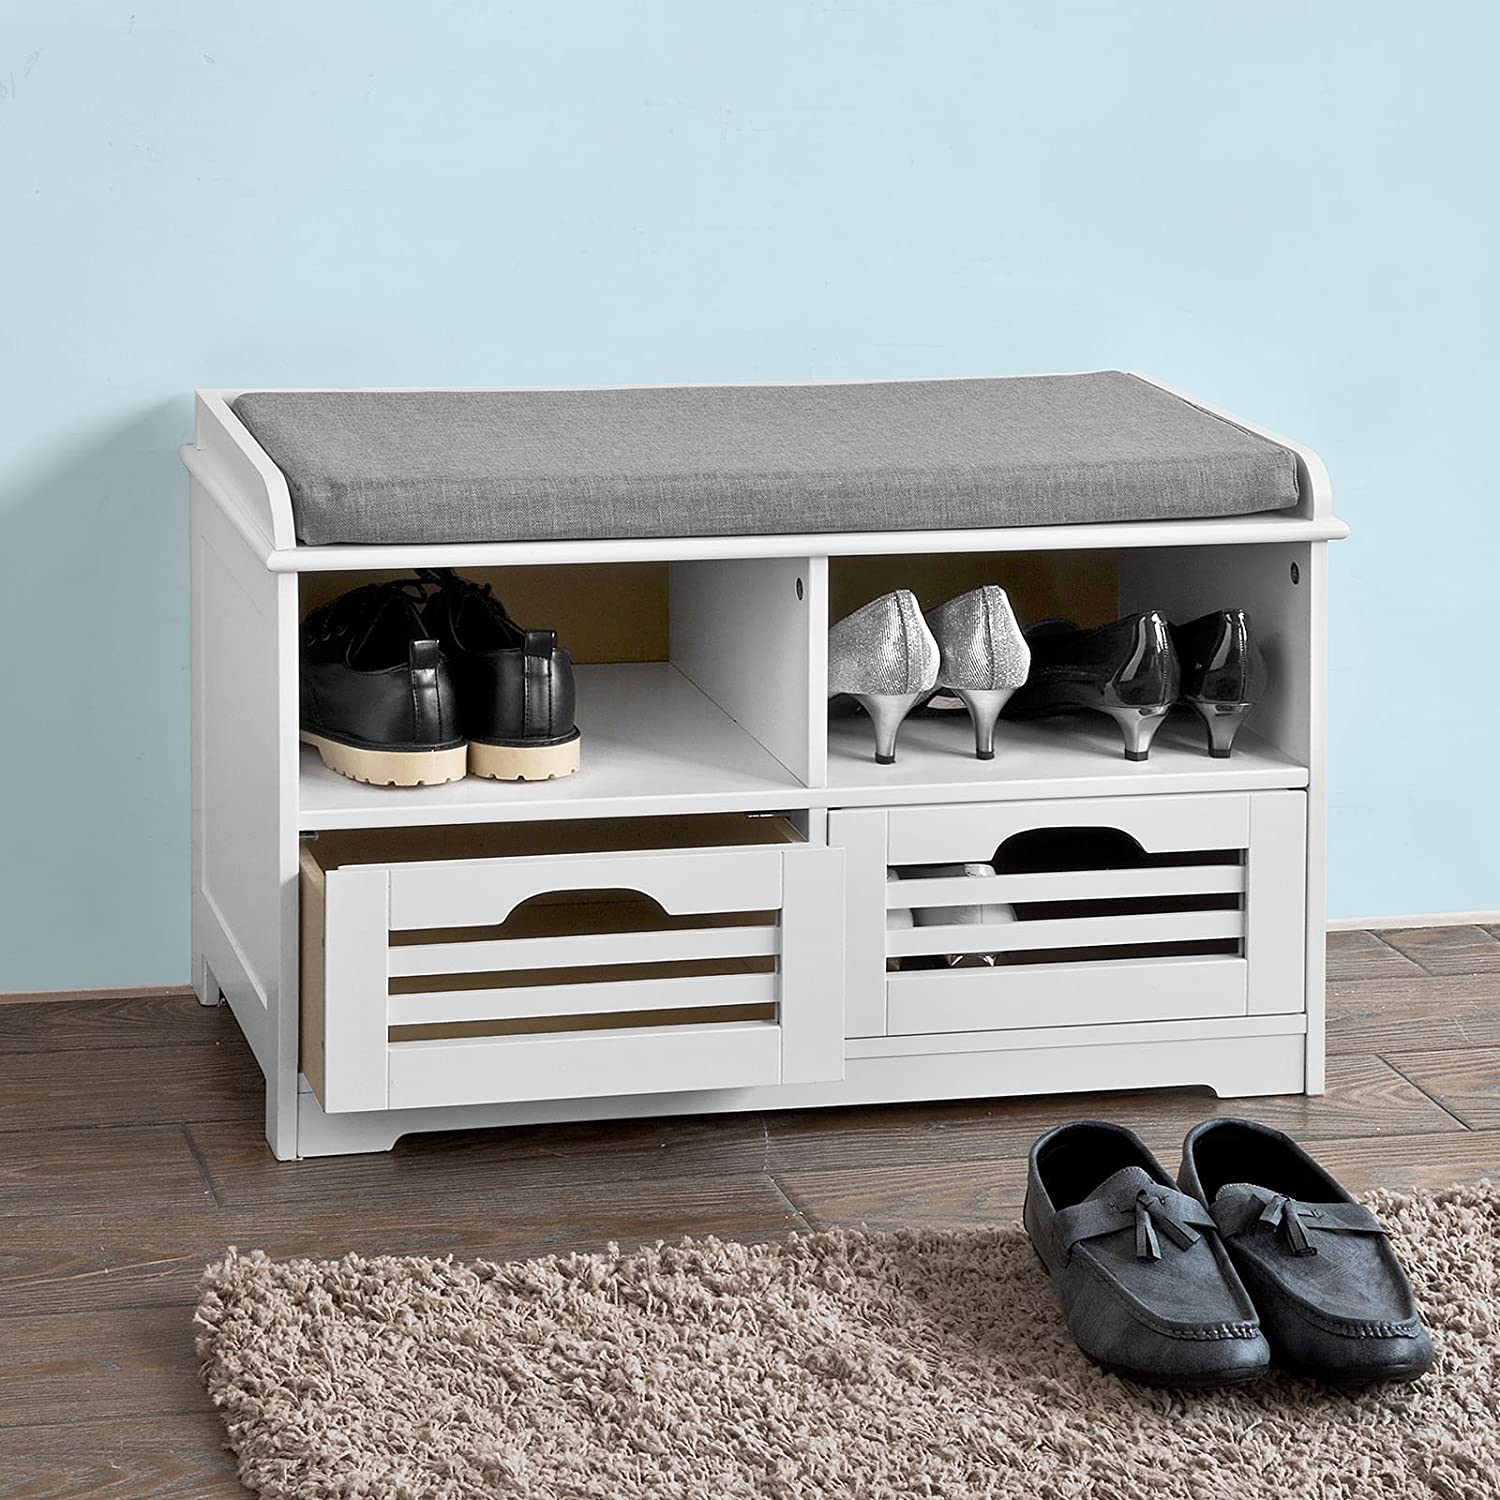 cube organizer product storage maison white rouge overstock today home lucius shipping antique salinas in garden bench free